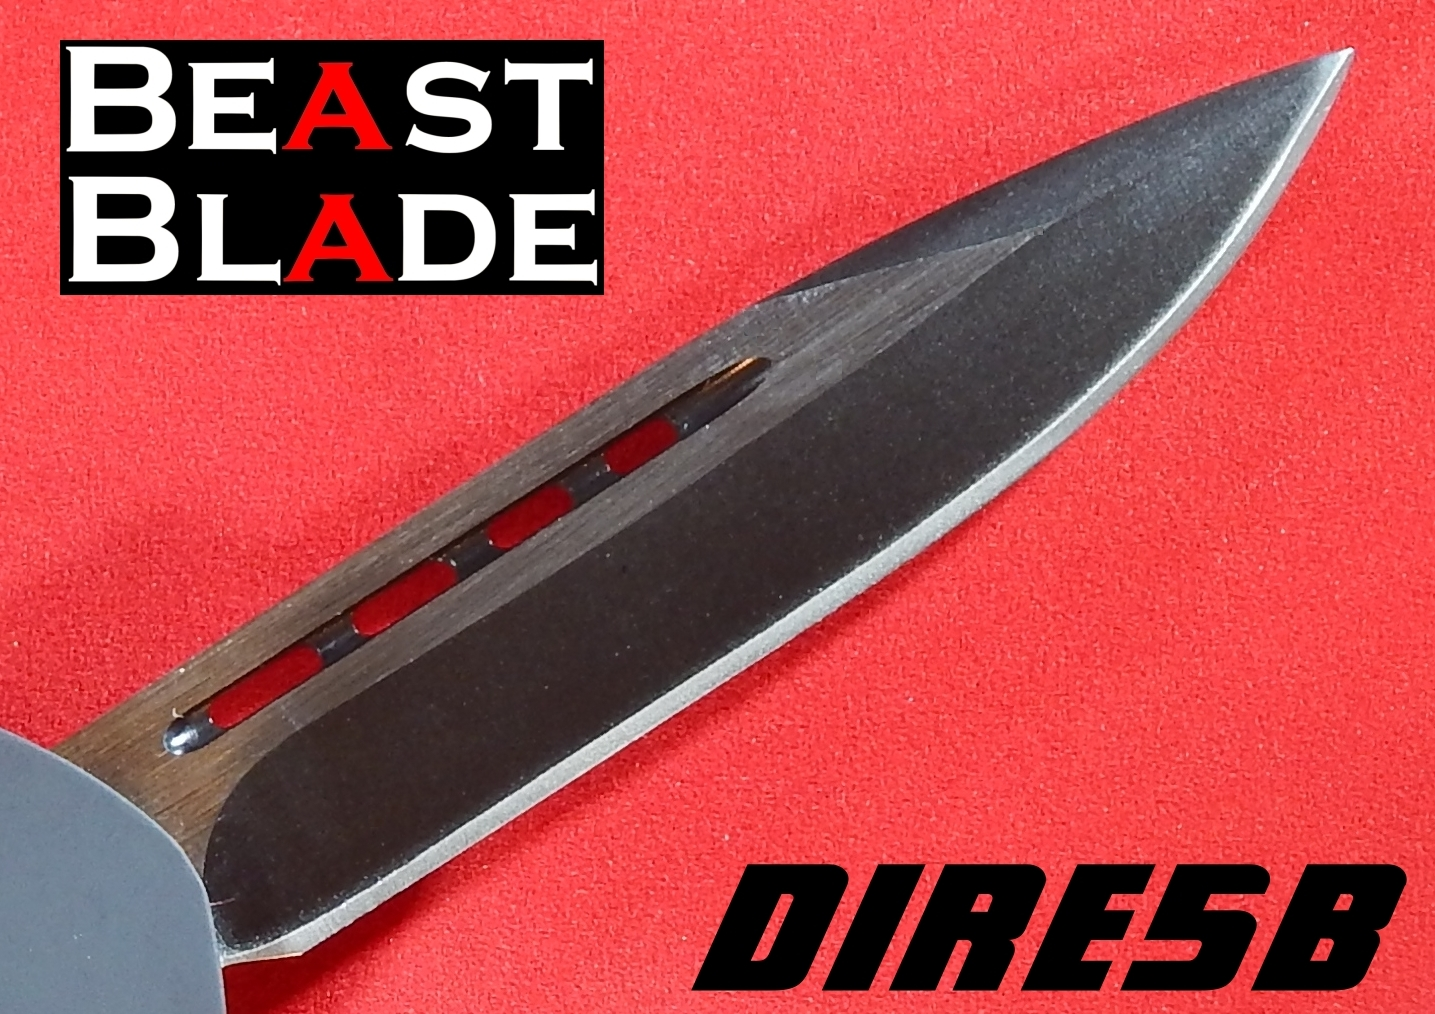 9 Inch Drop Point, Single Edge, Straight Blade